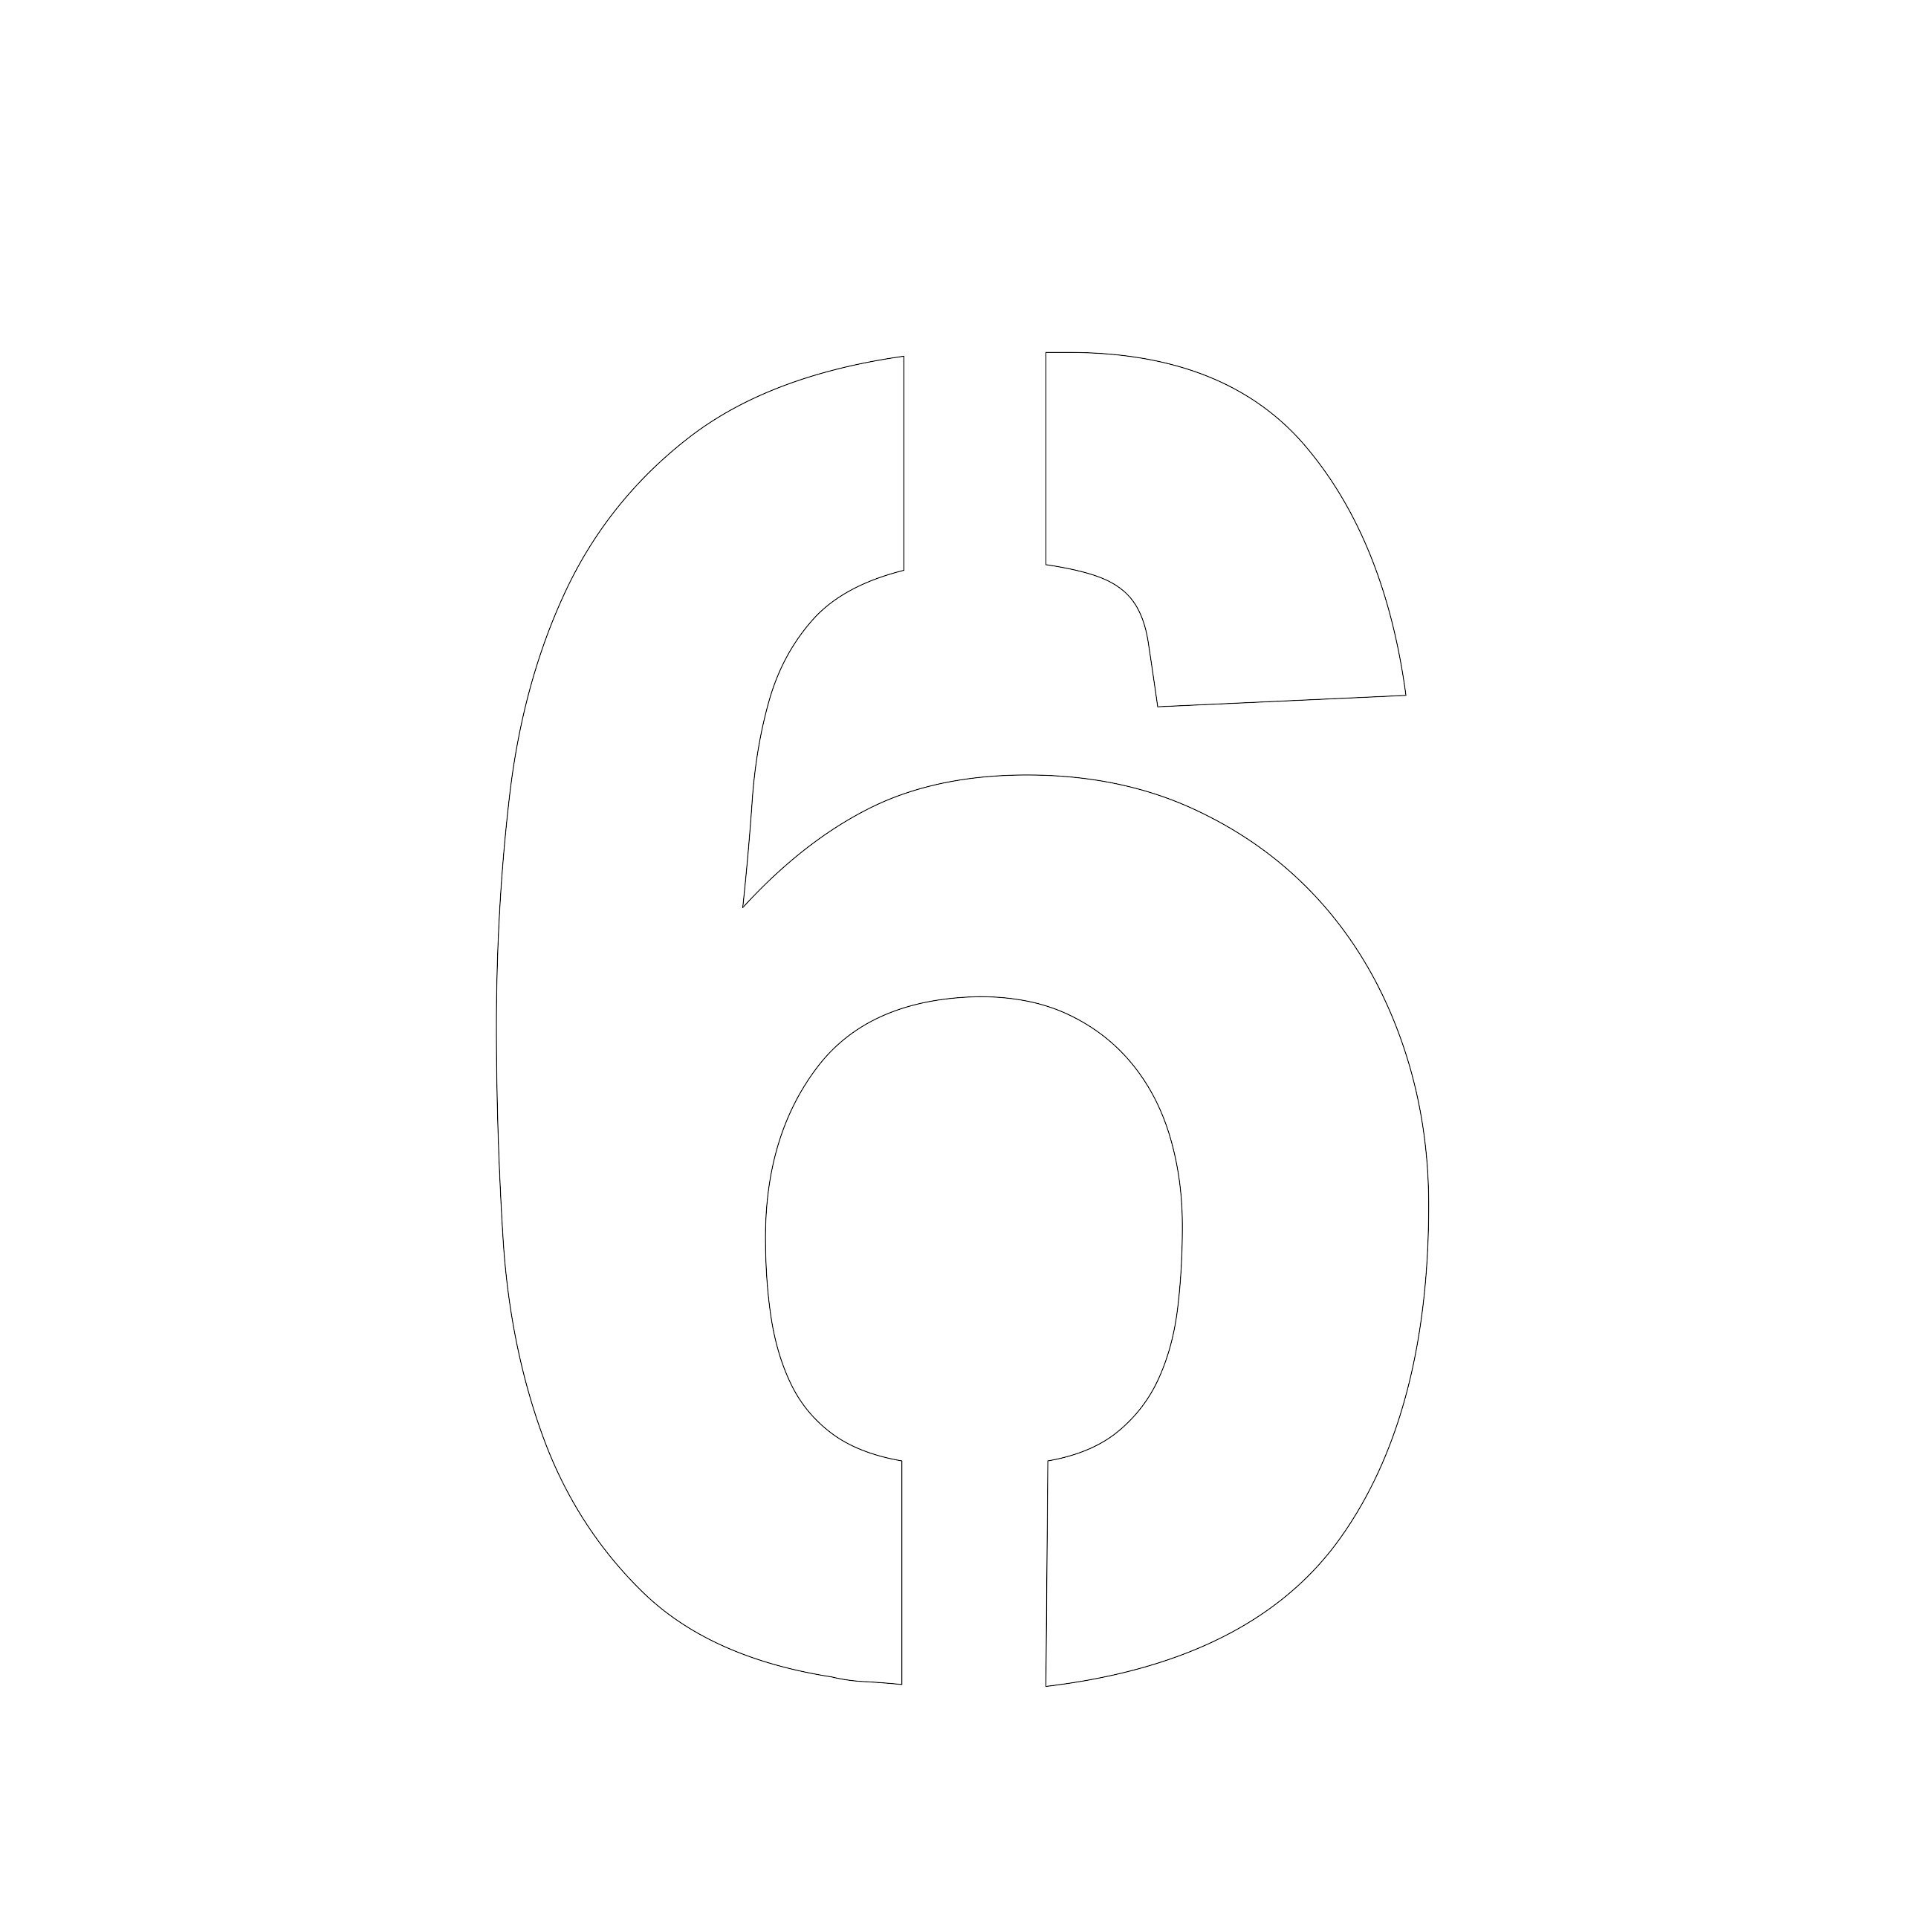 picture of the number 6 design